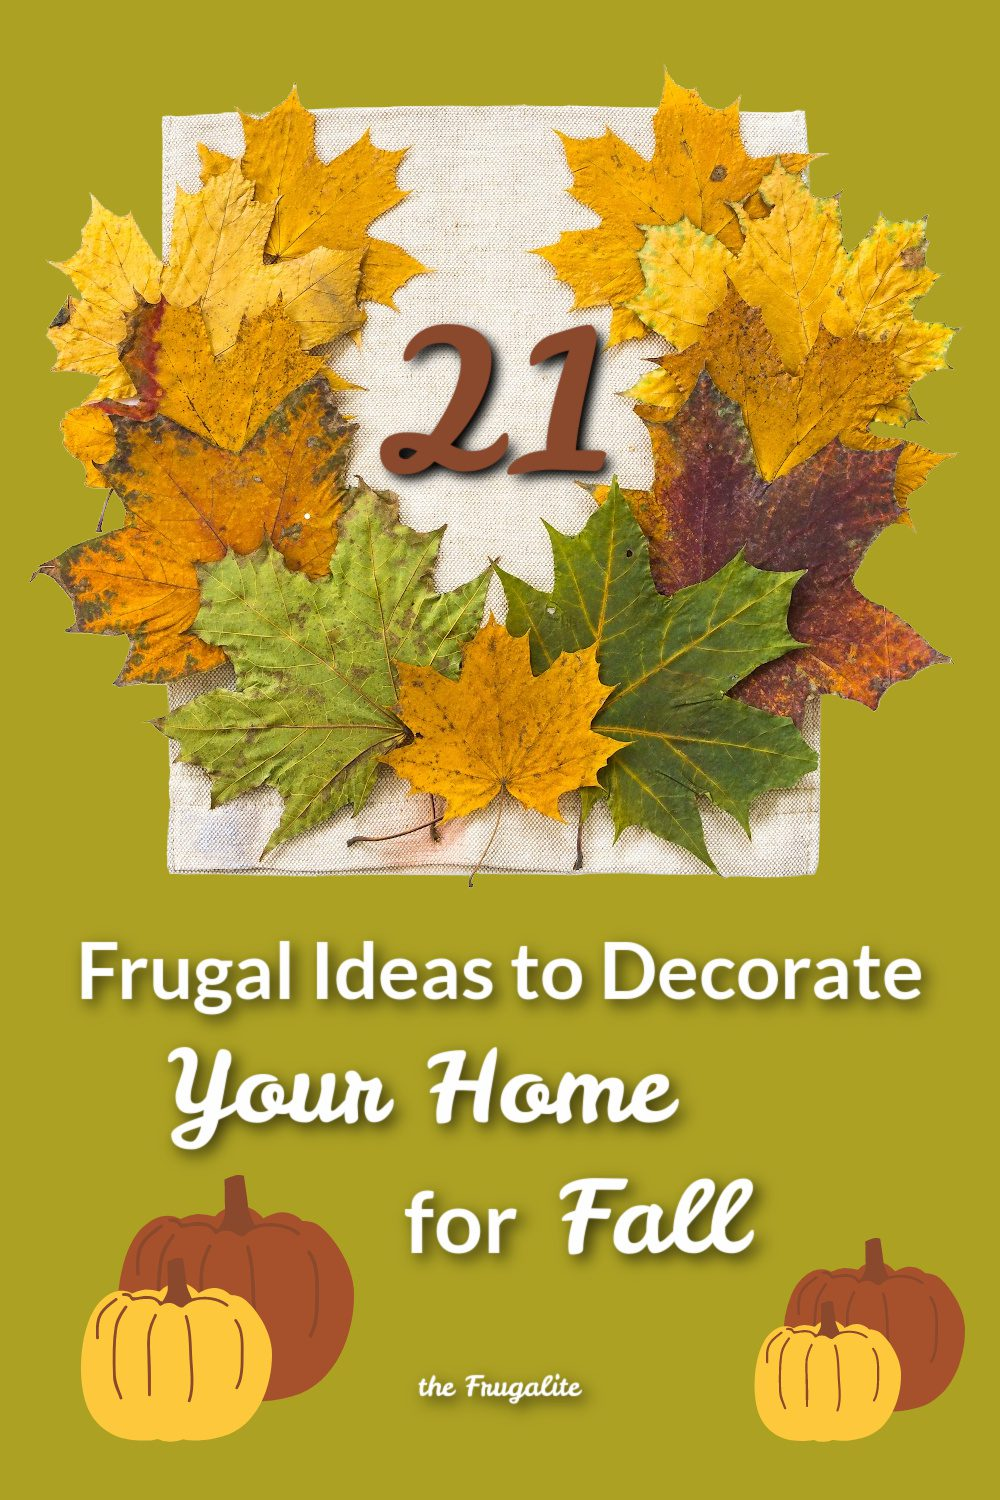 21 Frugal Ideas to Decorate Your Home For Fall